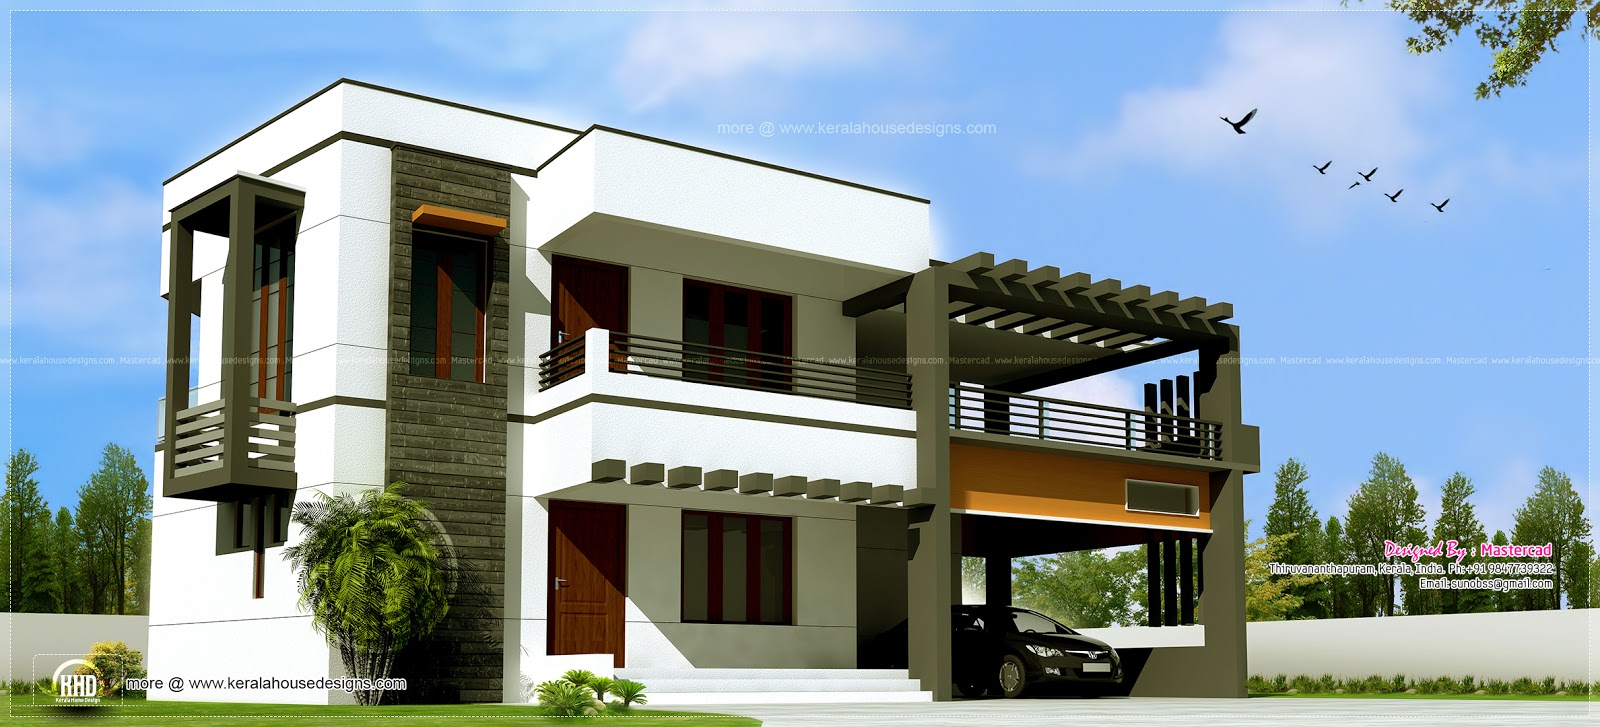 3012 contemporary house home kerala plans for 500 square meters house design